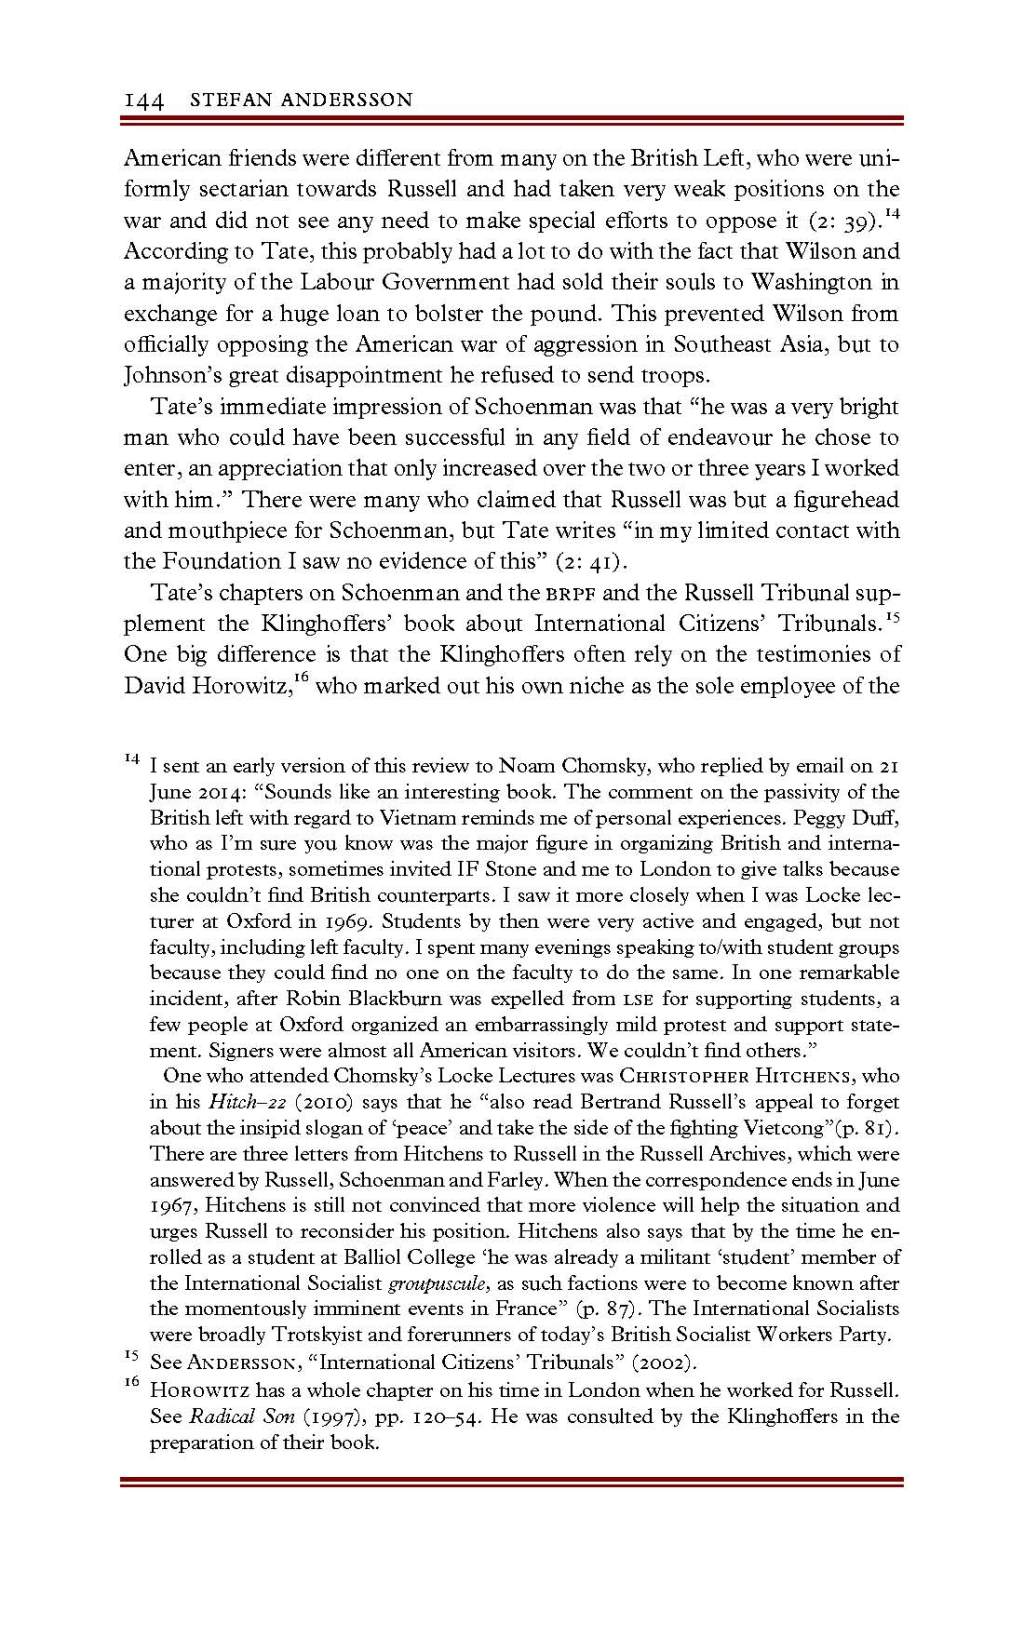 Anderson-- Pages from RJ 3402 050 red-5 (2)-1_Page_10